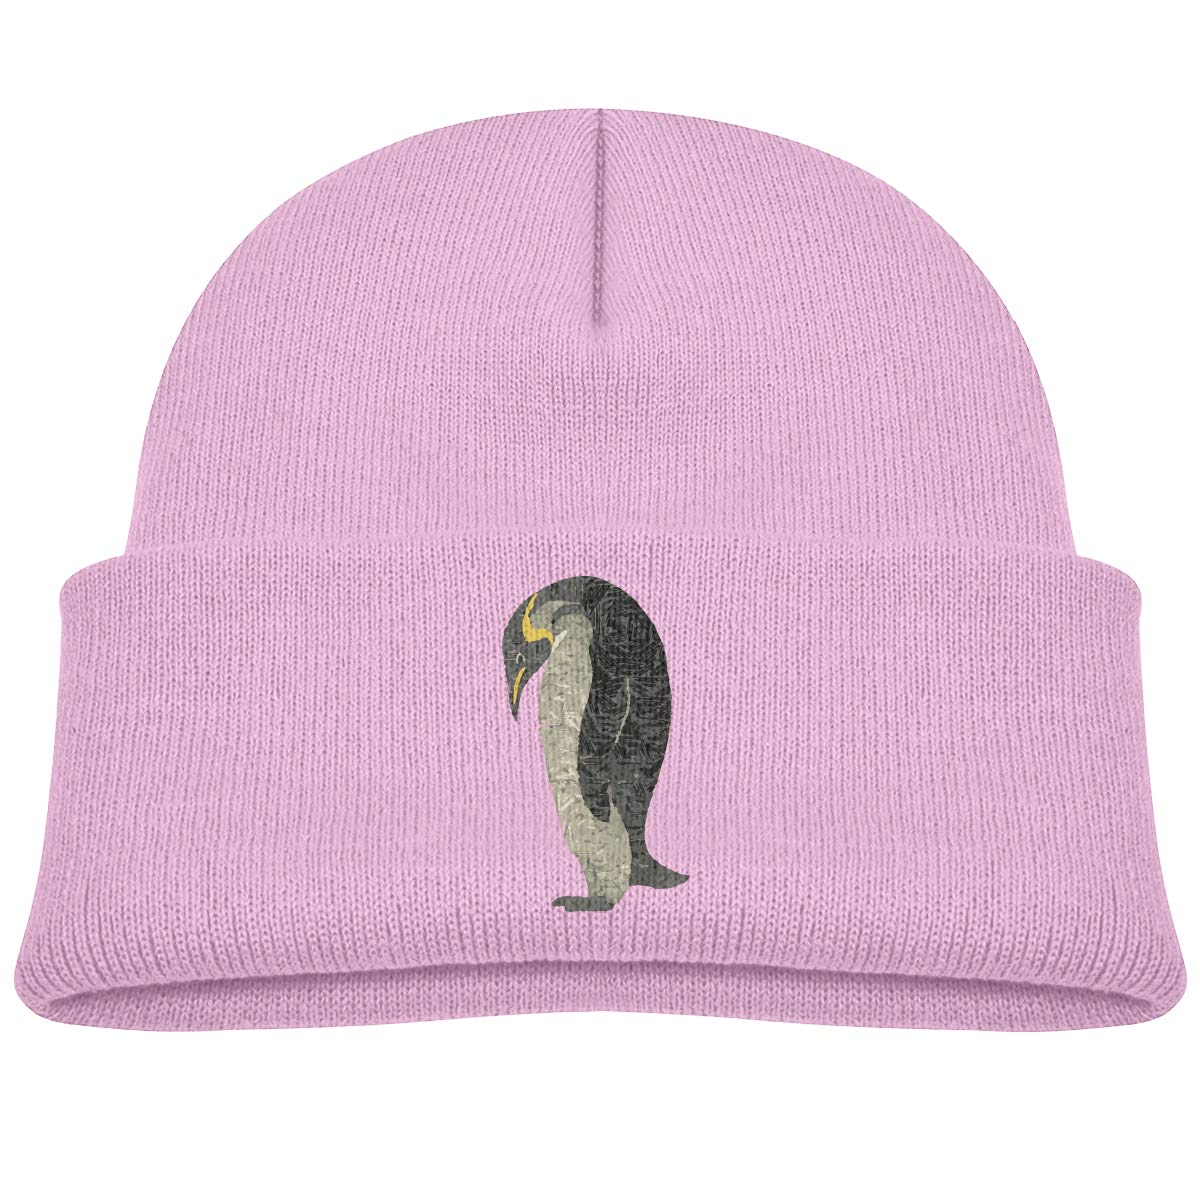 Childrens Lovely Knitted Hat Floral Flamingo Kintting Hat